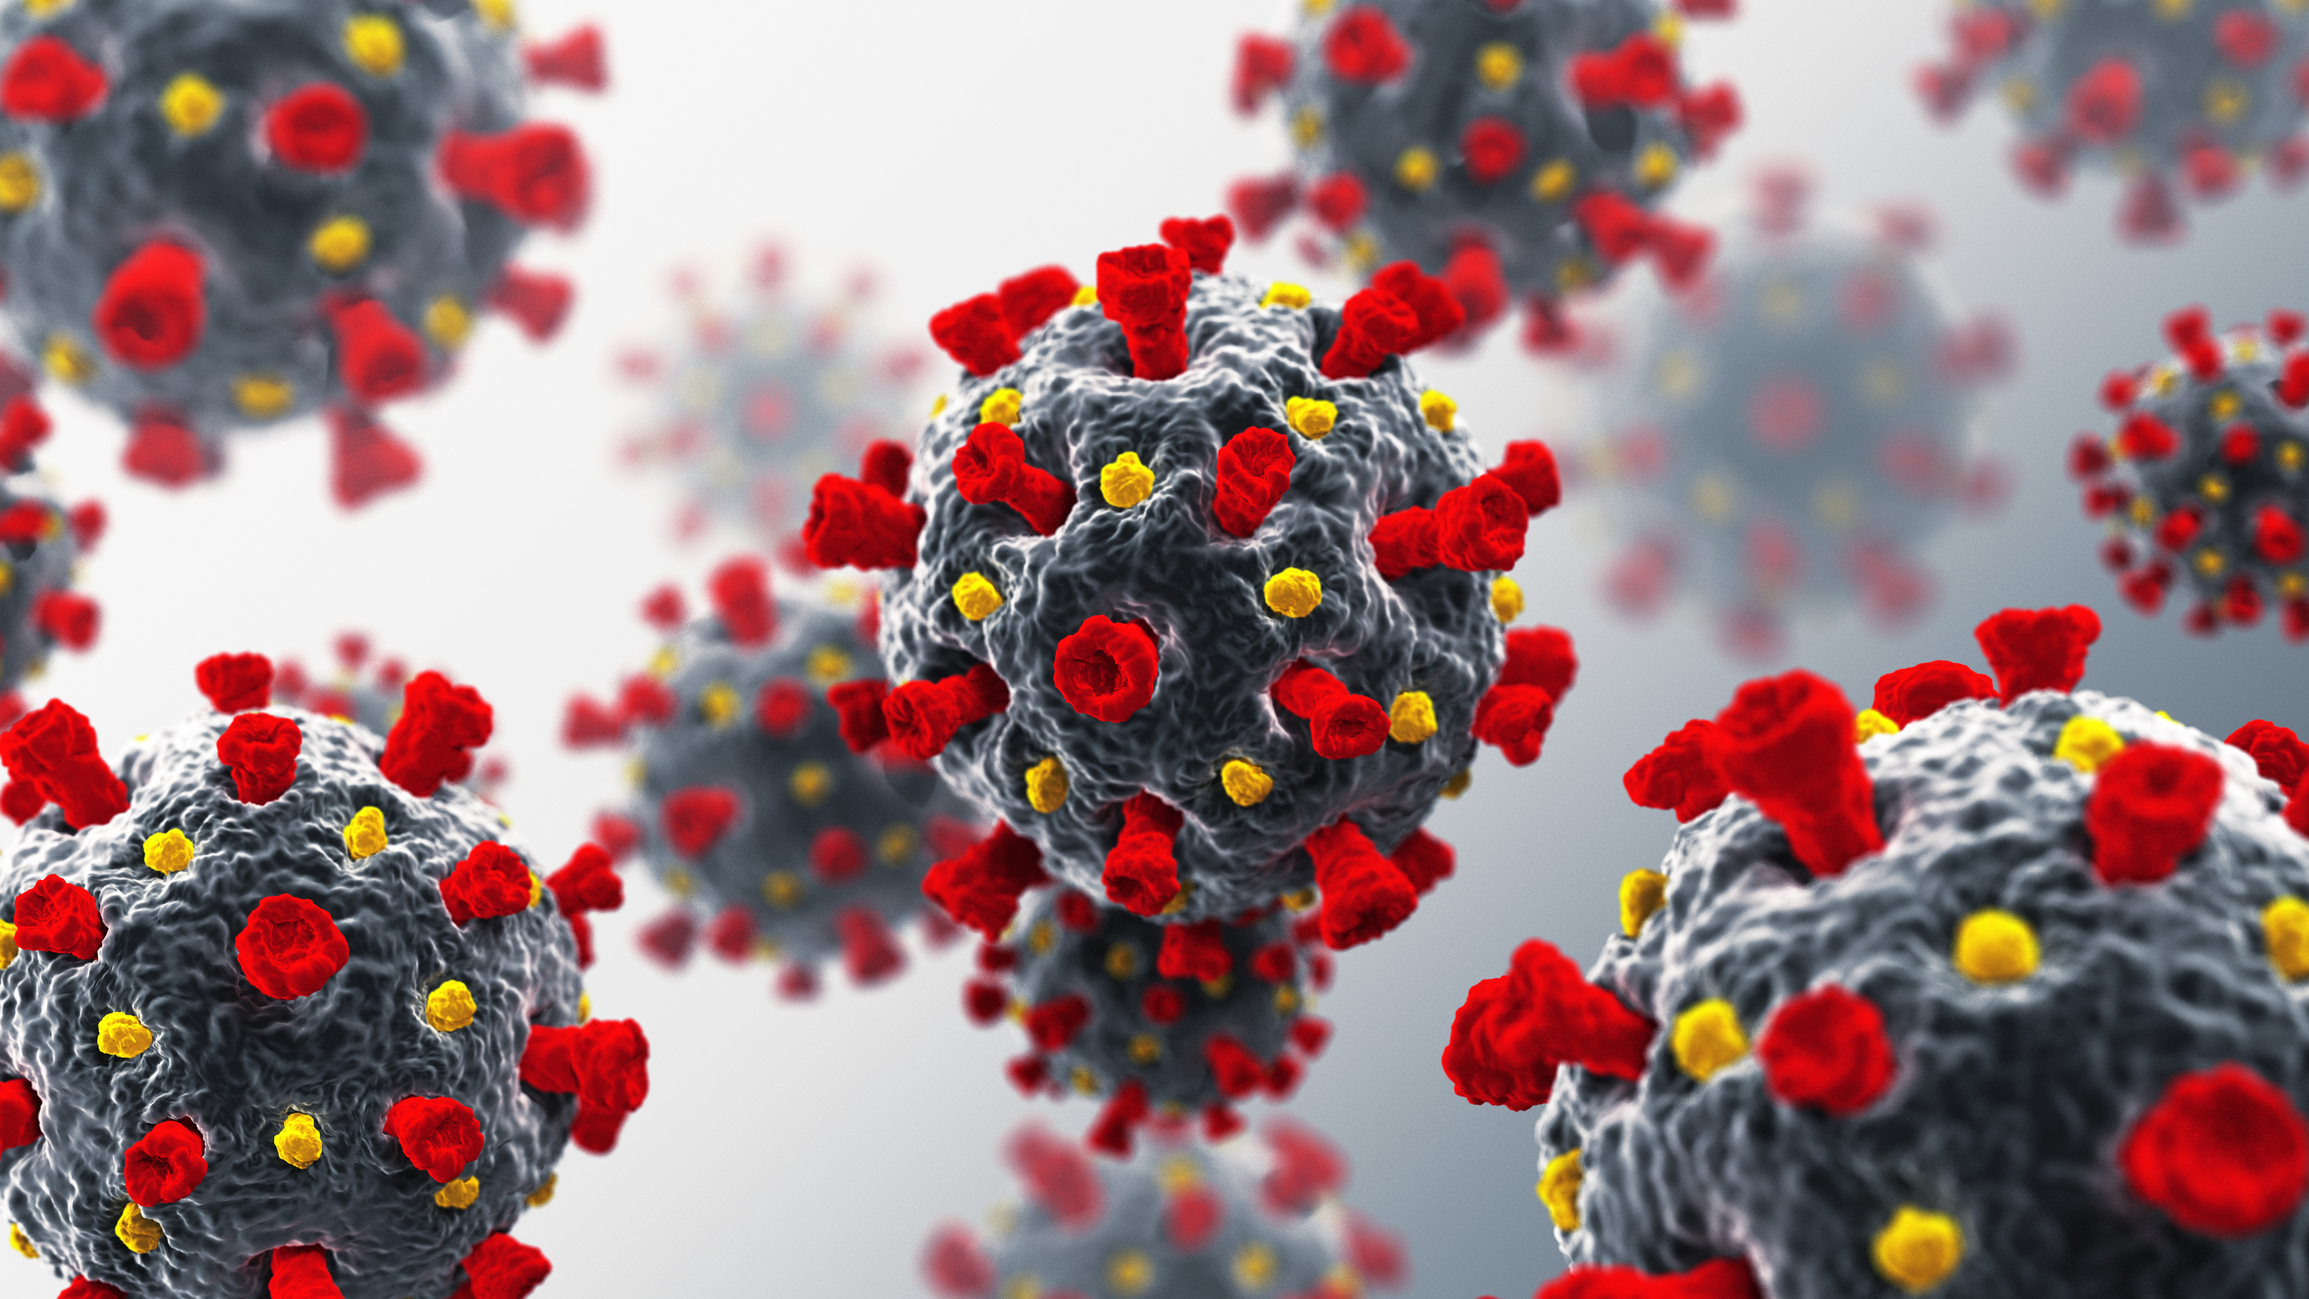 A 3D rendering of the COVID-19 virus. (Image: Getty Images)